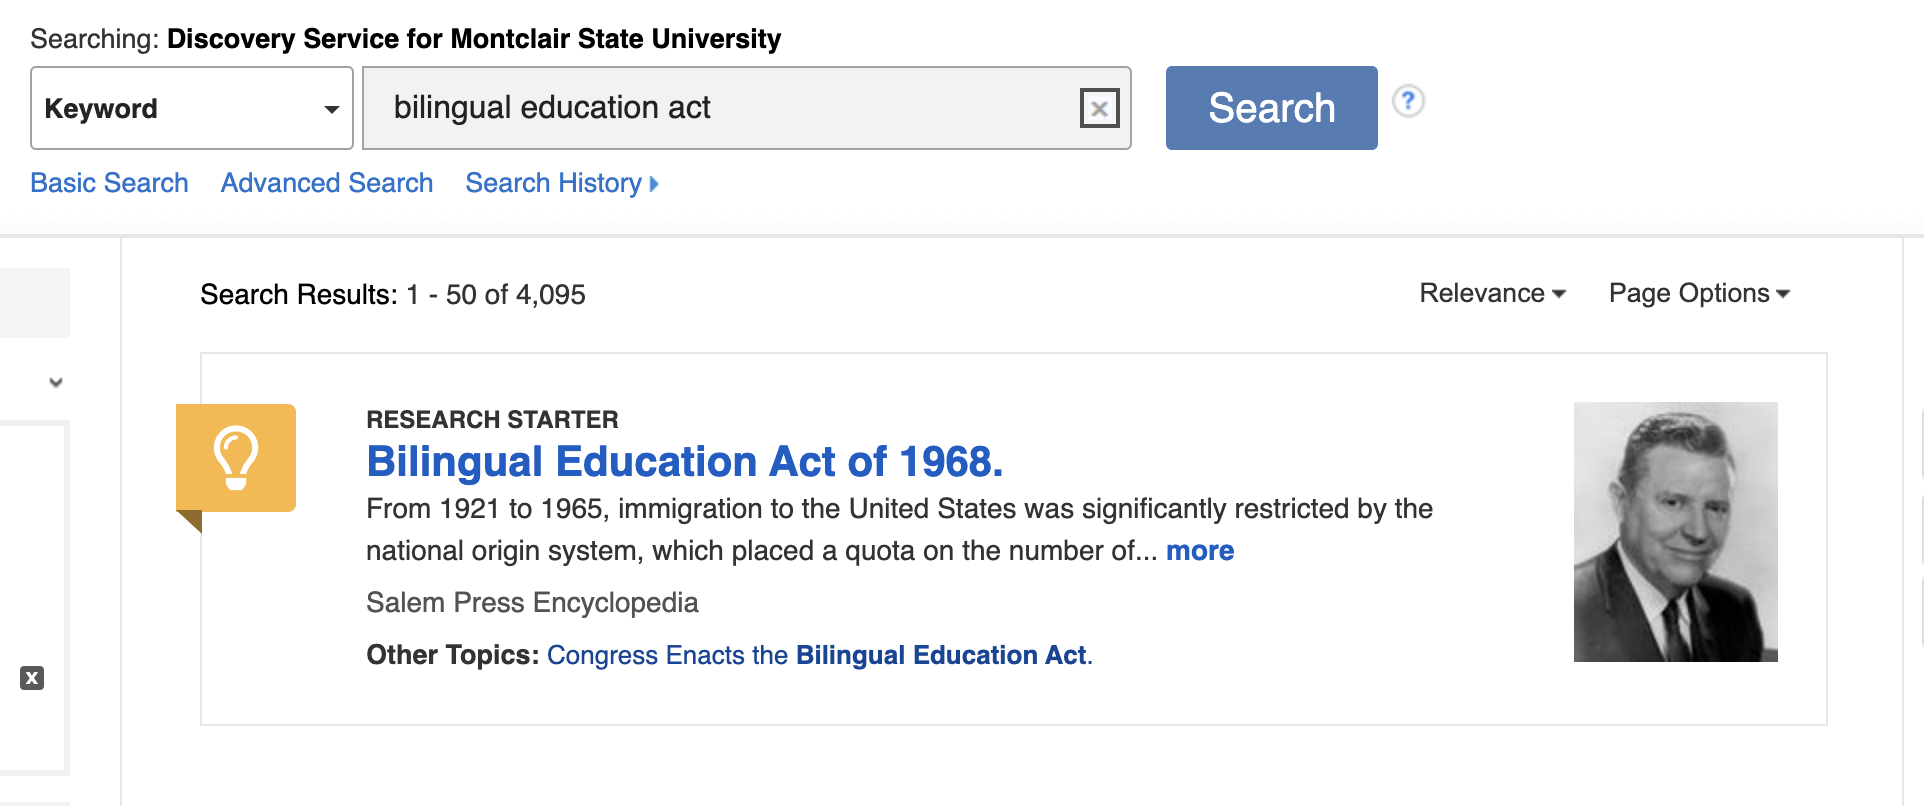 Research Starter for the Bilingual Education Act